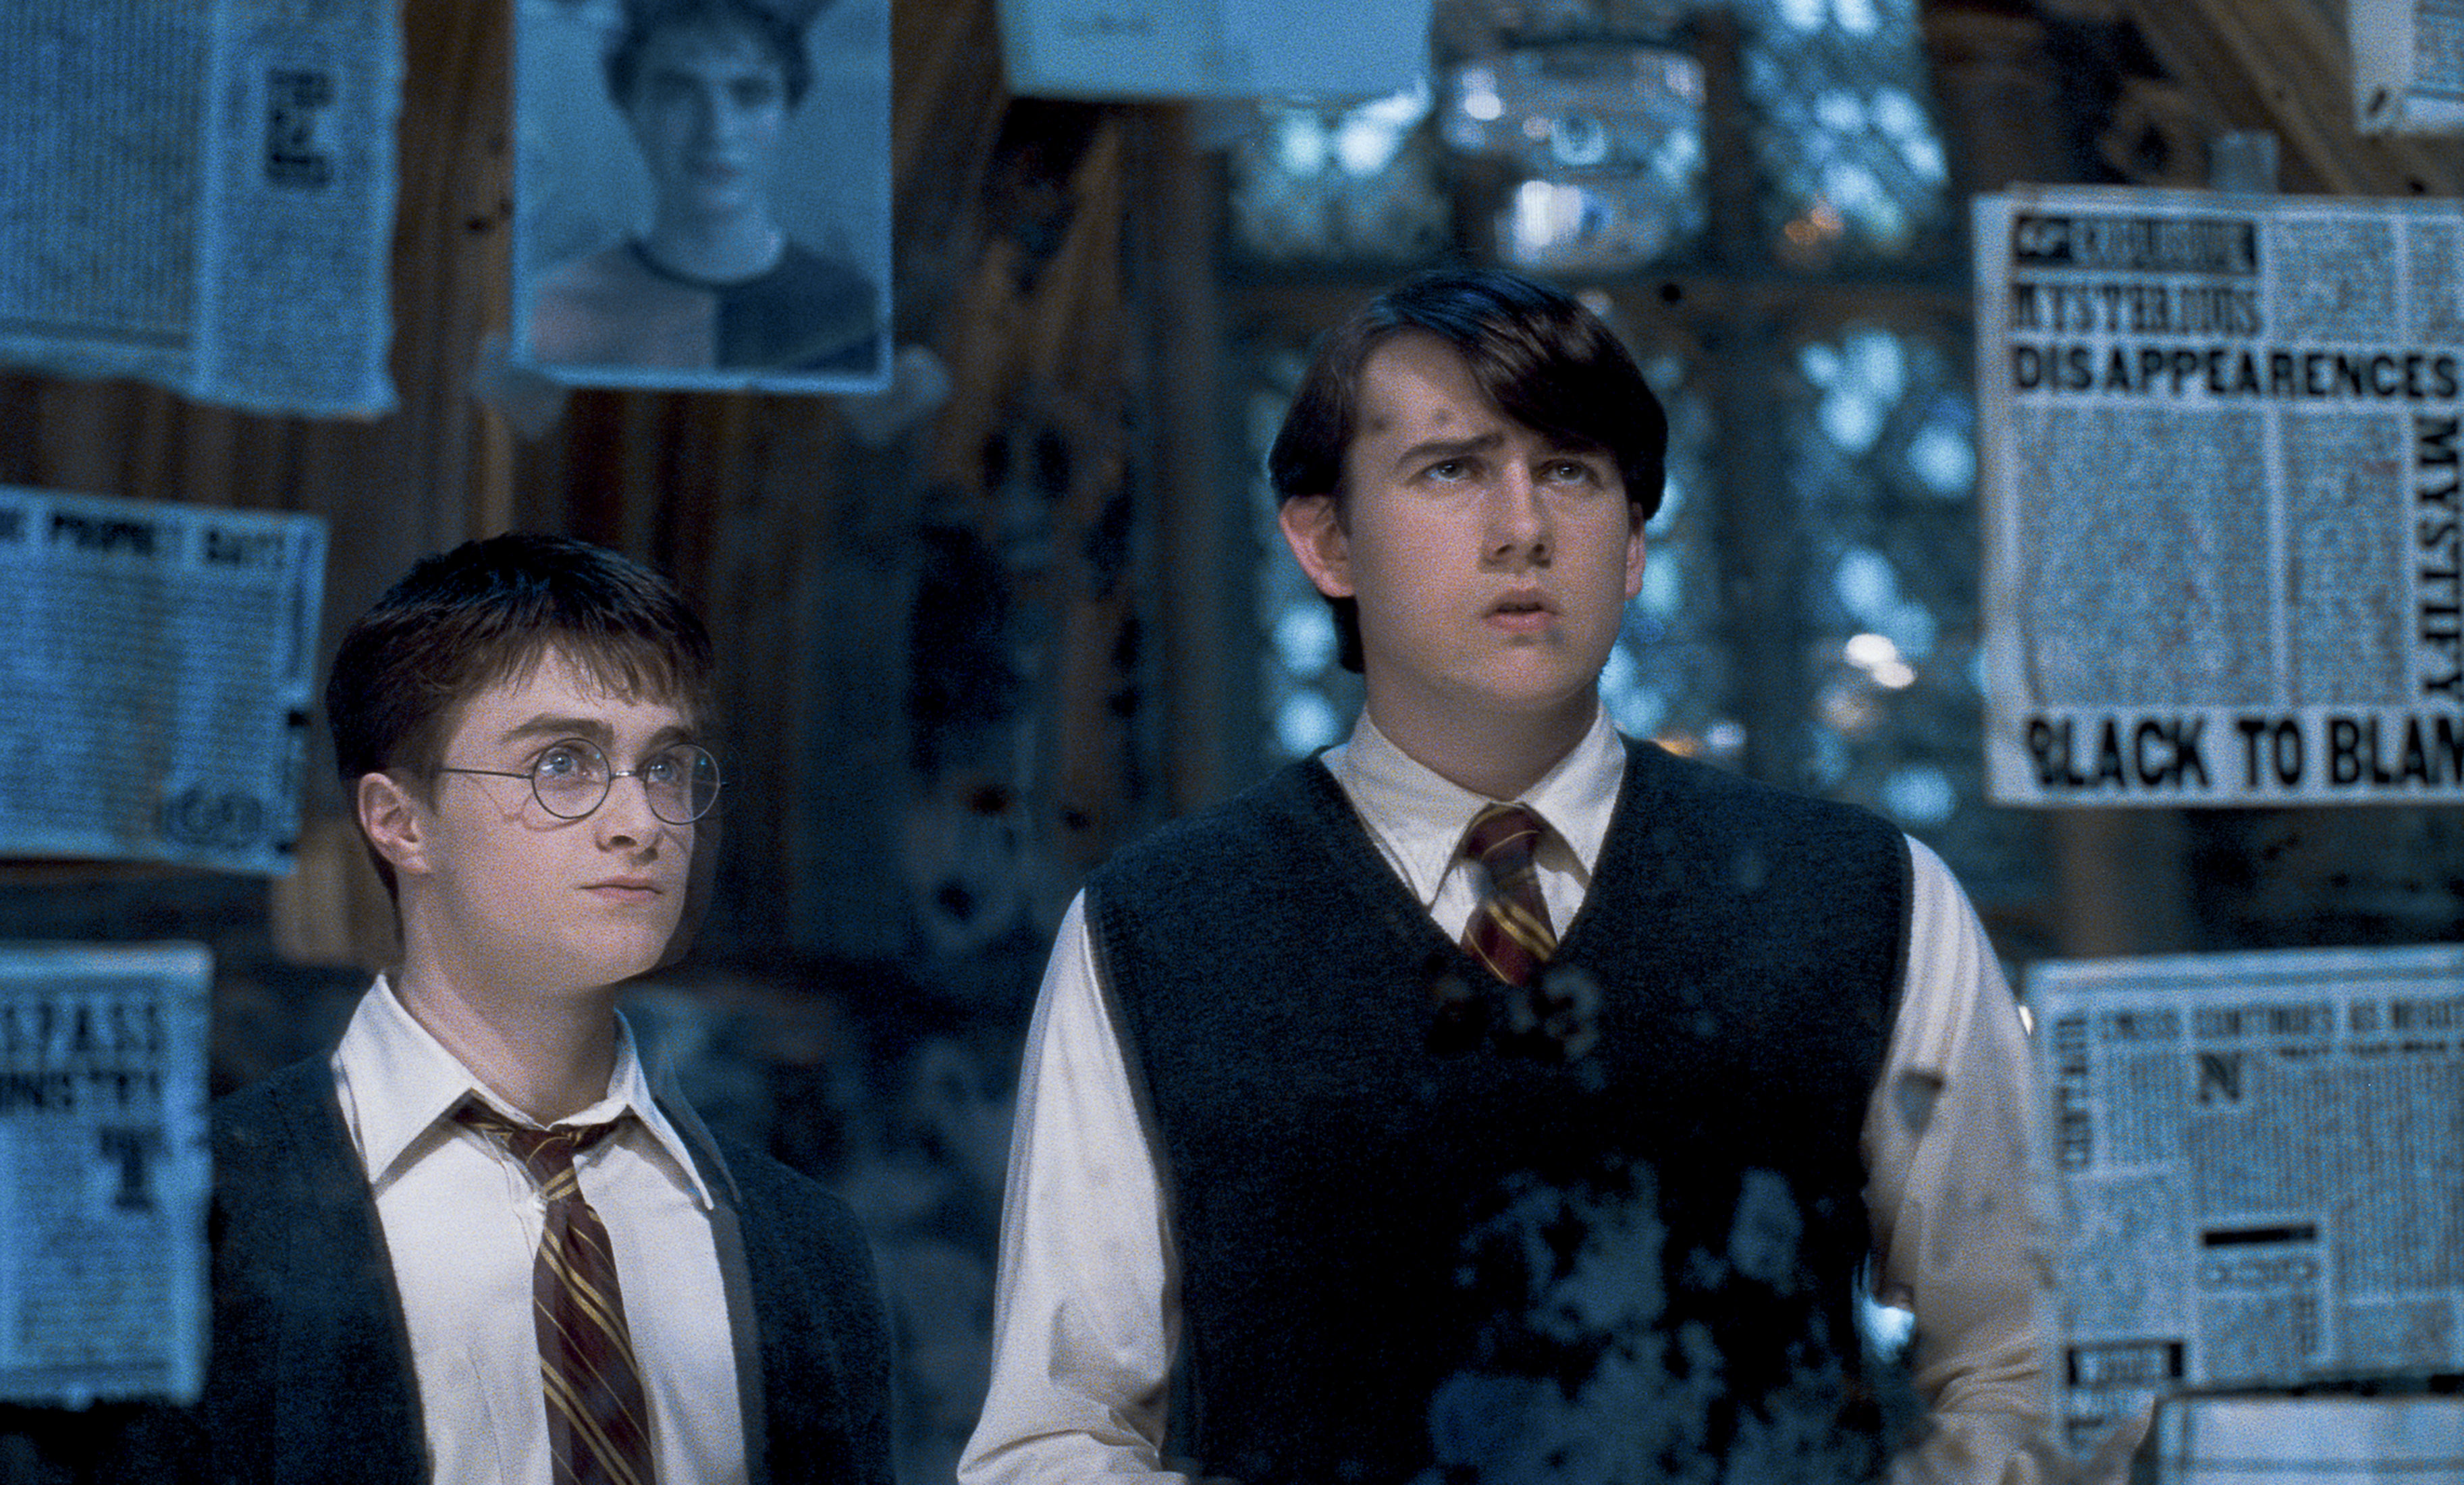 Harry and Neville in the Room of Requirement from the Order of the Phoenix